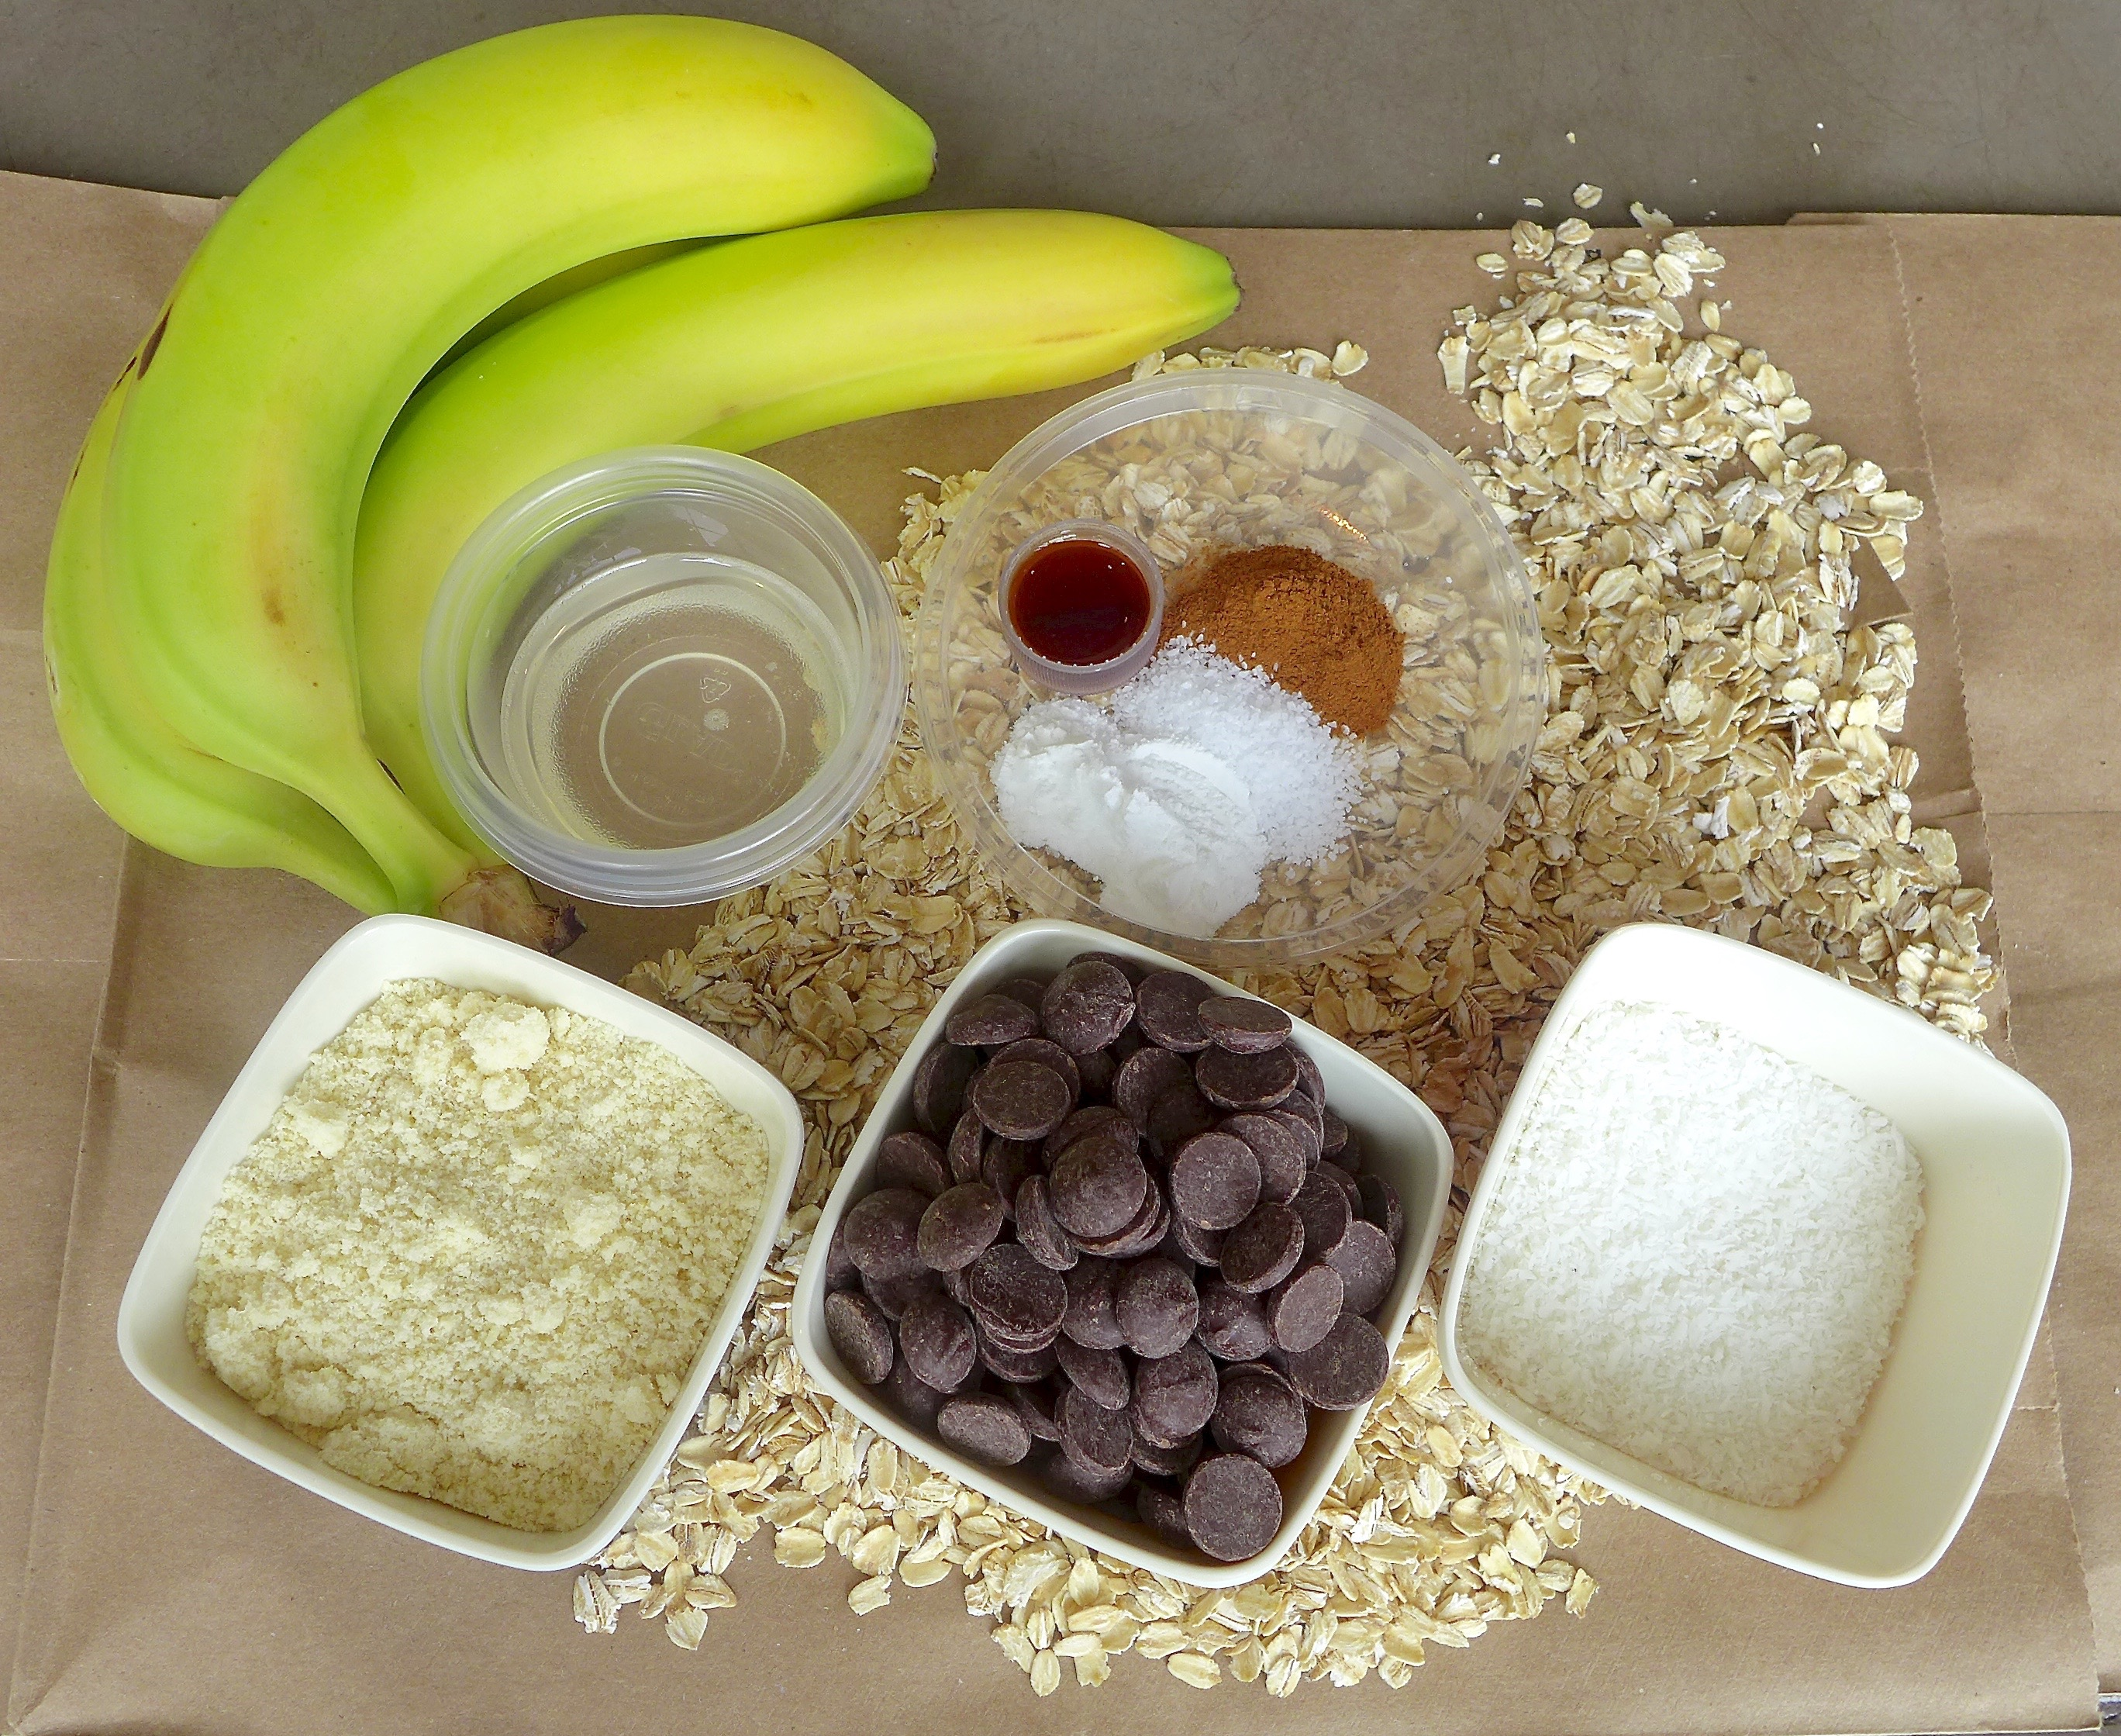 Bananas and coconut oil replace butter and eggs in this simple but delicious cookie recipe.